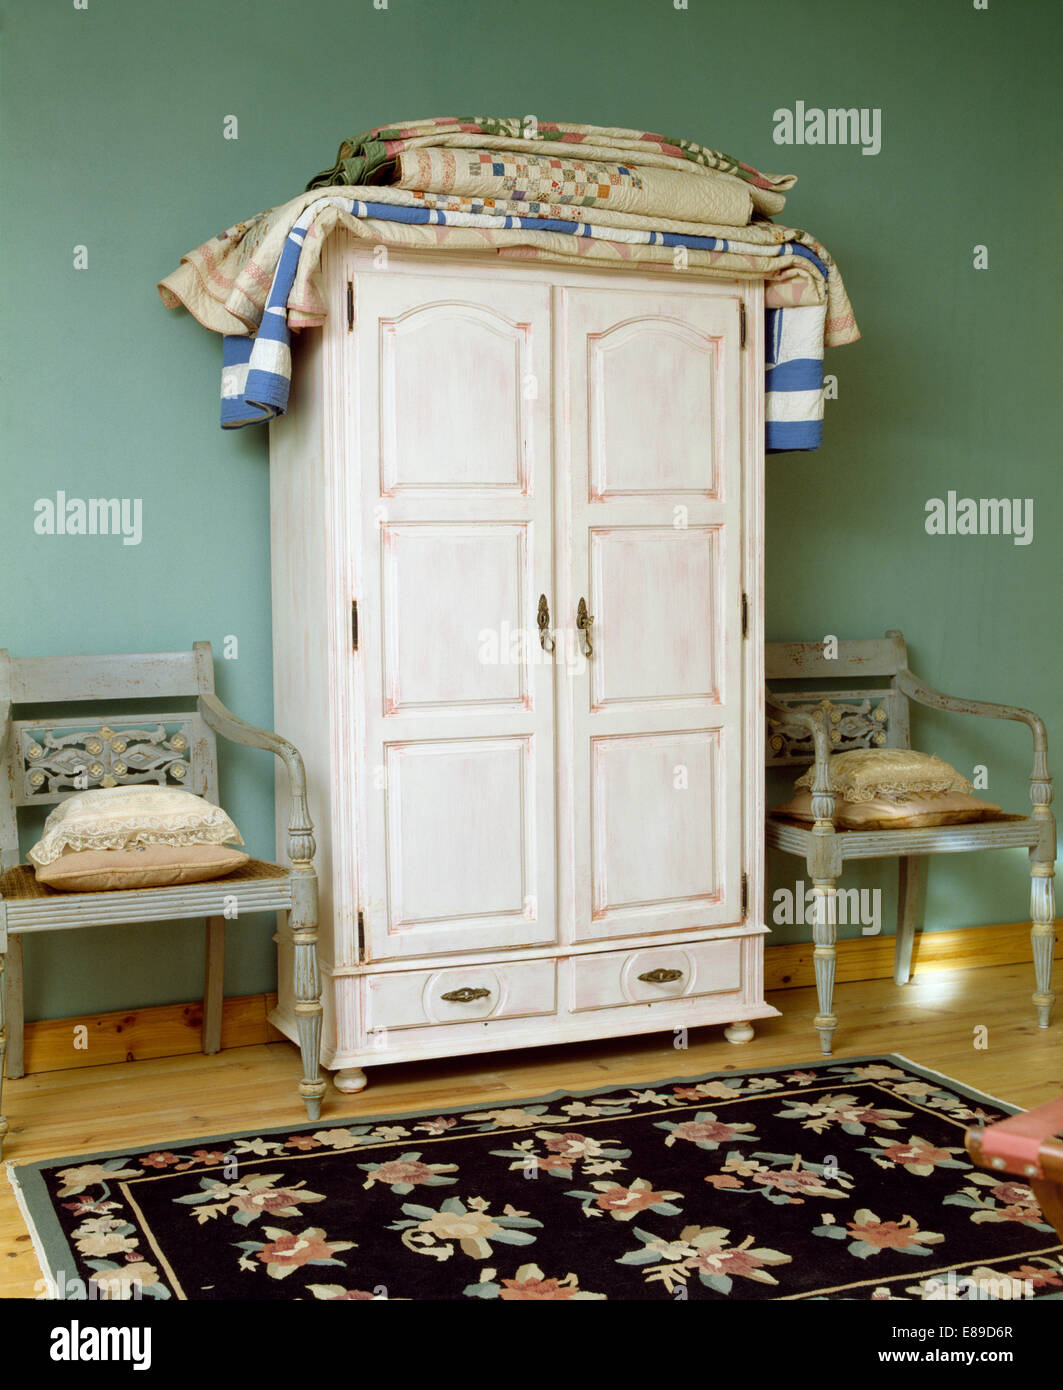 Folded Patchwork Quilts On White Painted Cupboard In Pale Green Bedroom  With Floral Rug And Pale Grey Chairs